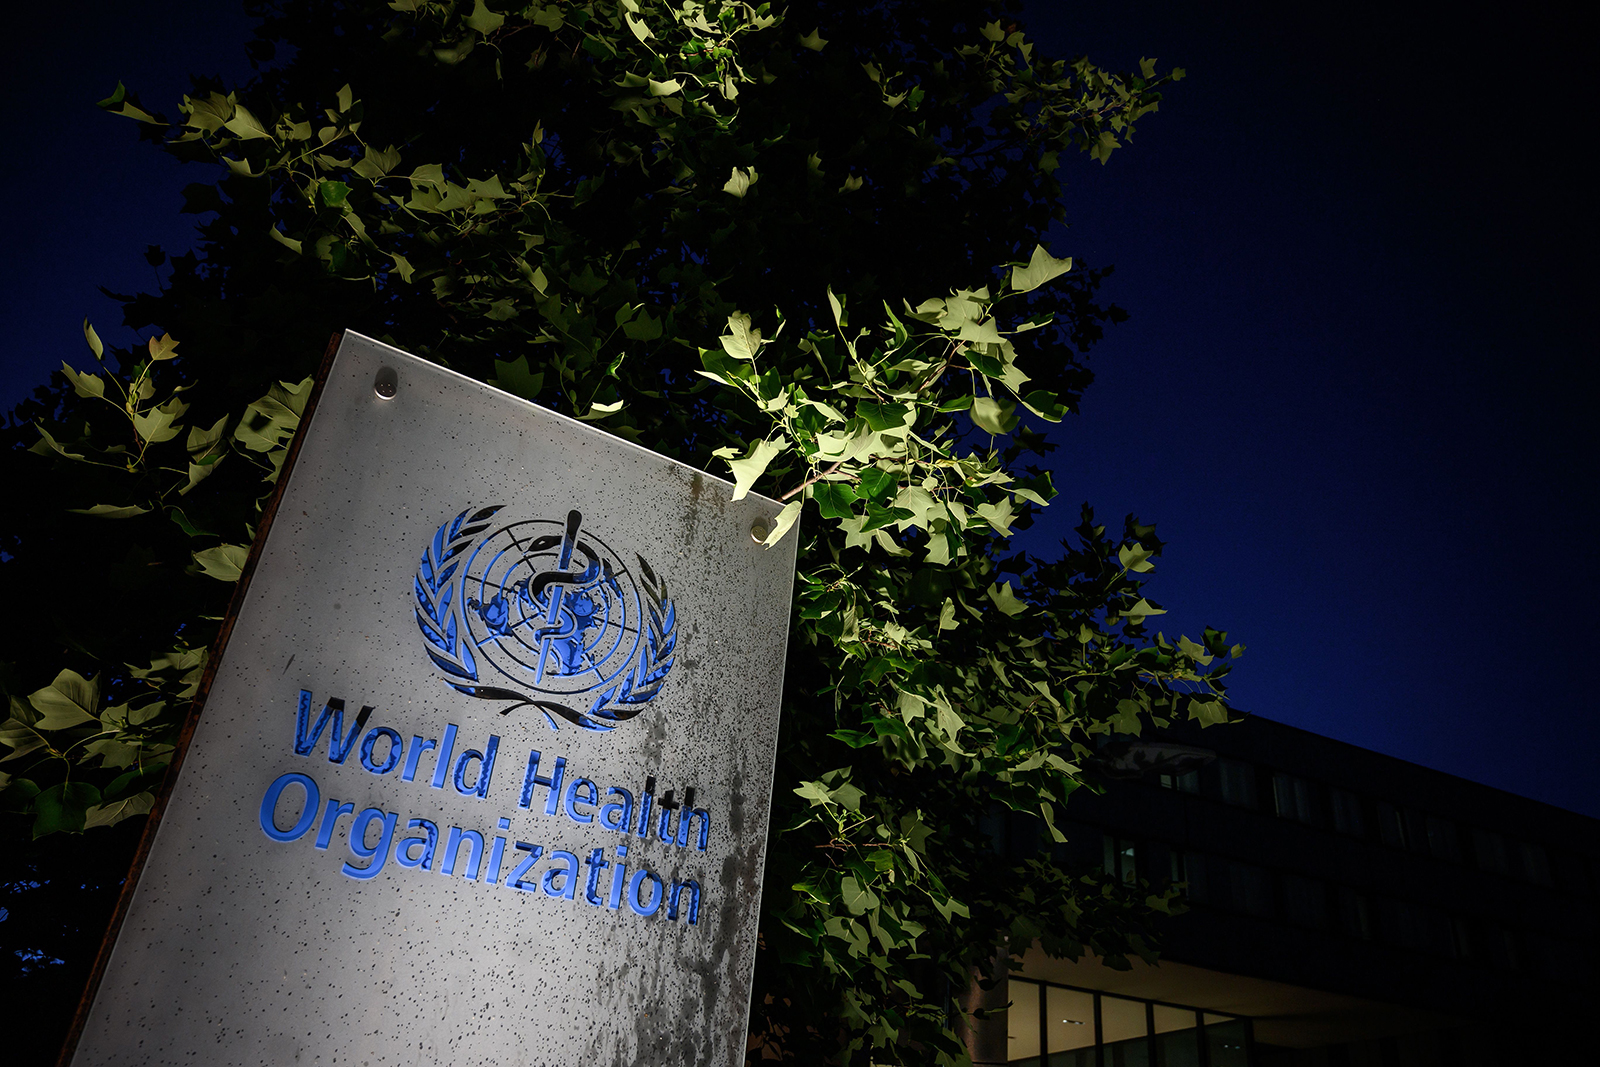 The World Health Organization headquarters sign seen here in Geneva, Switzerland, on May 29.